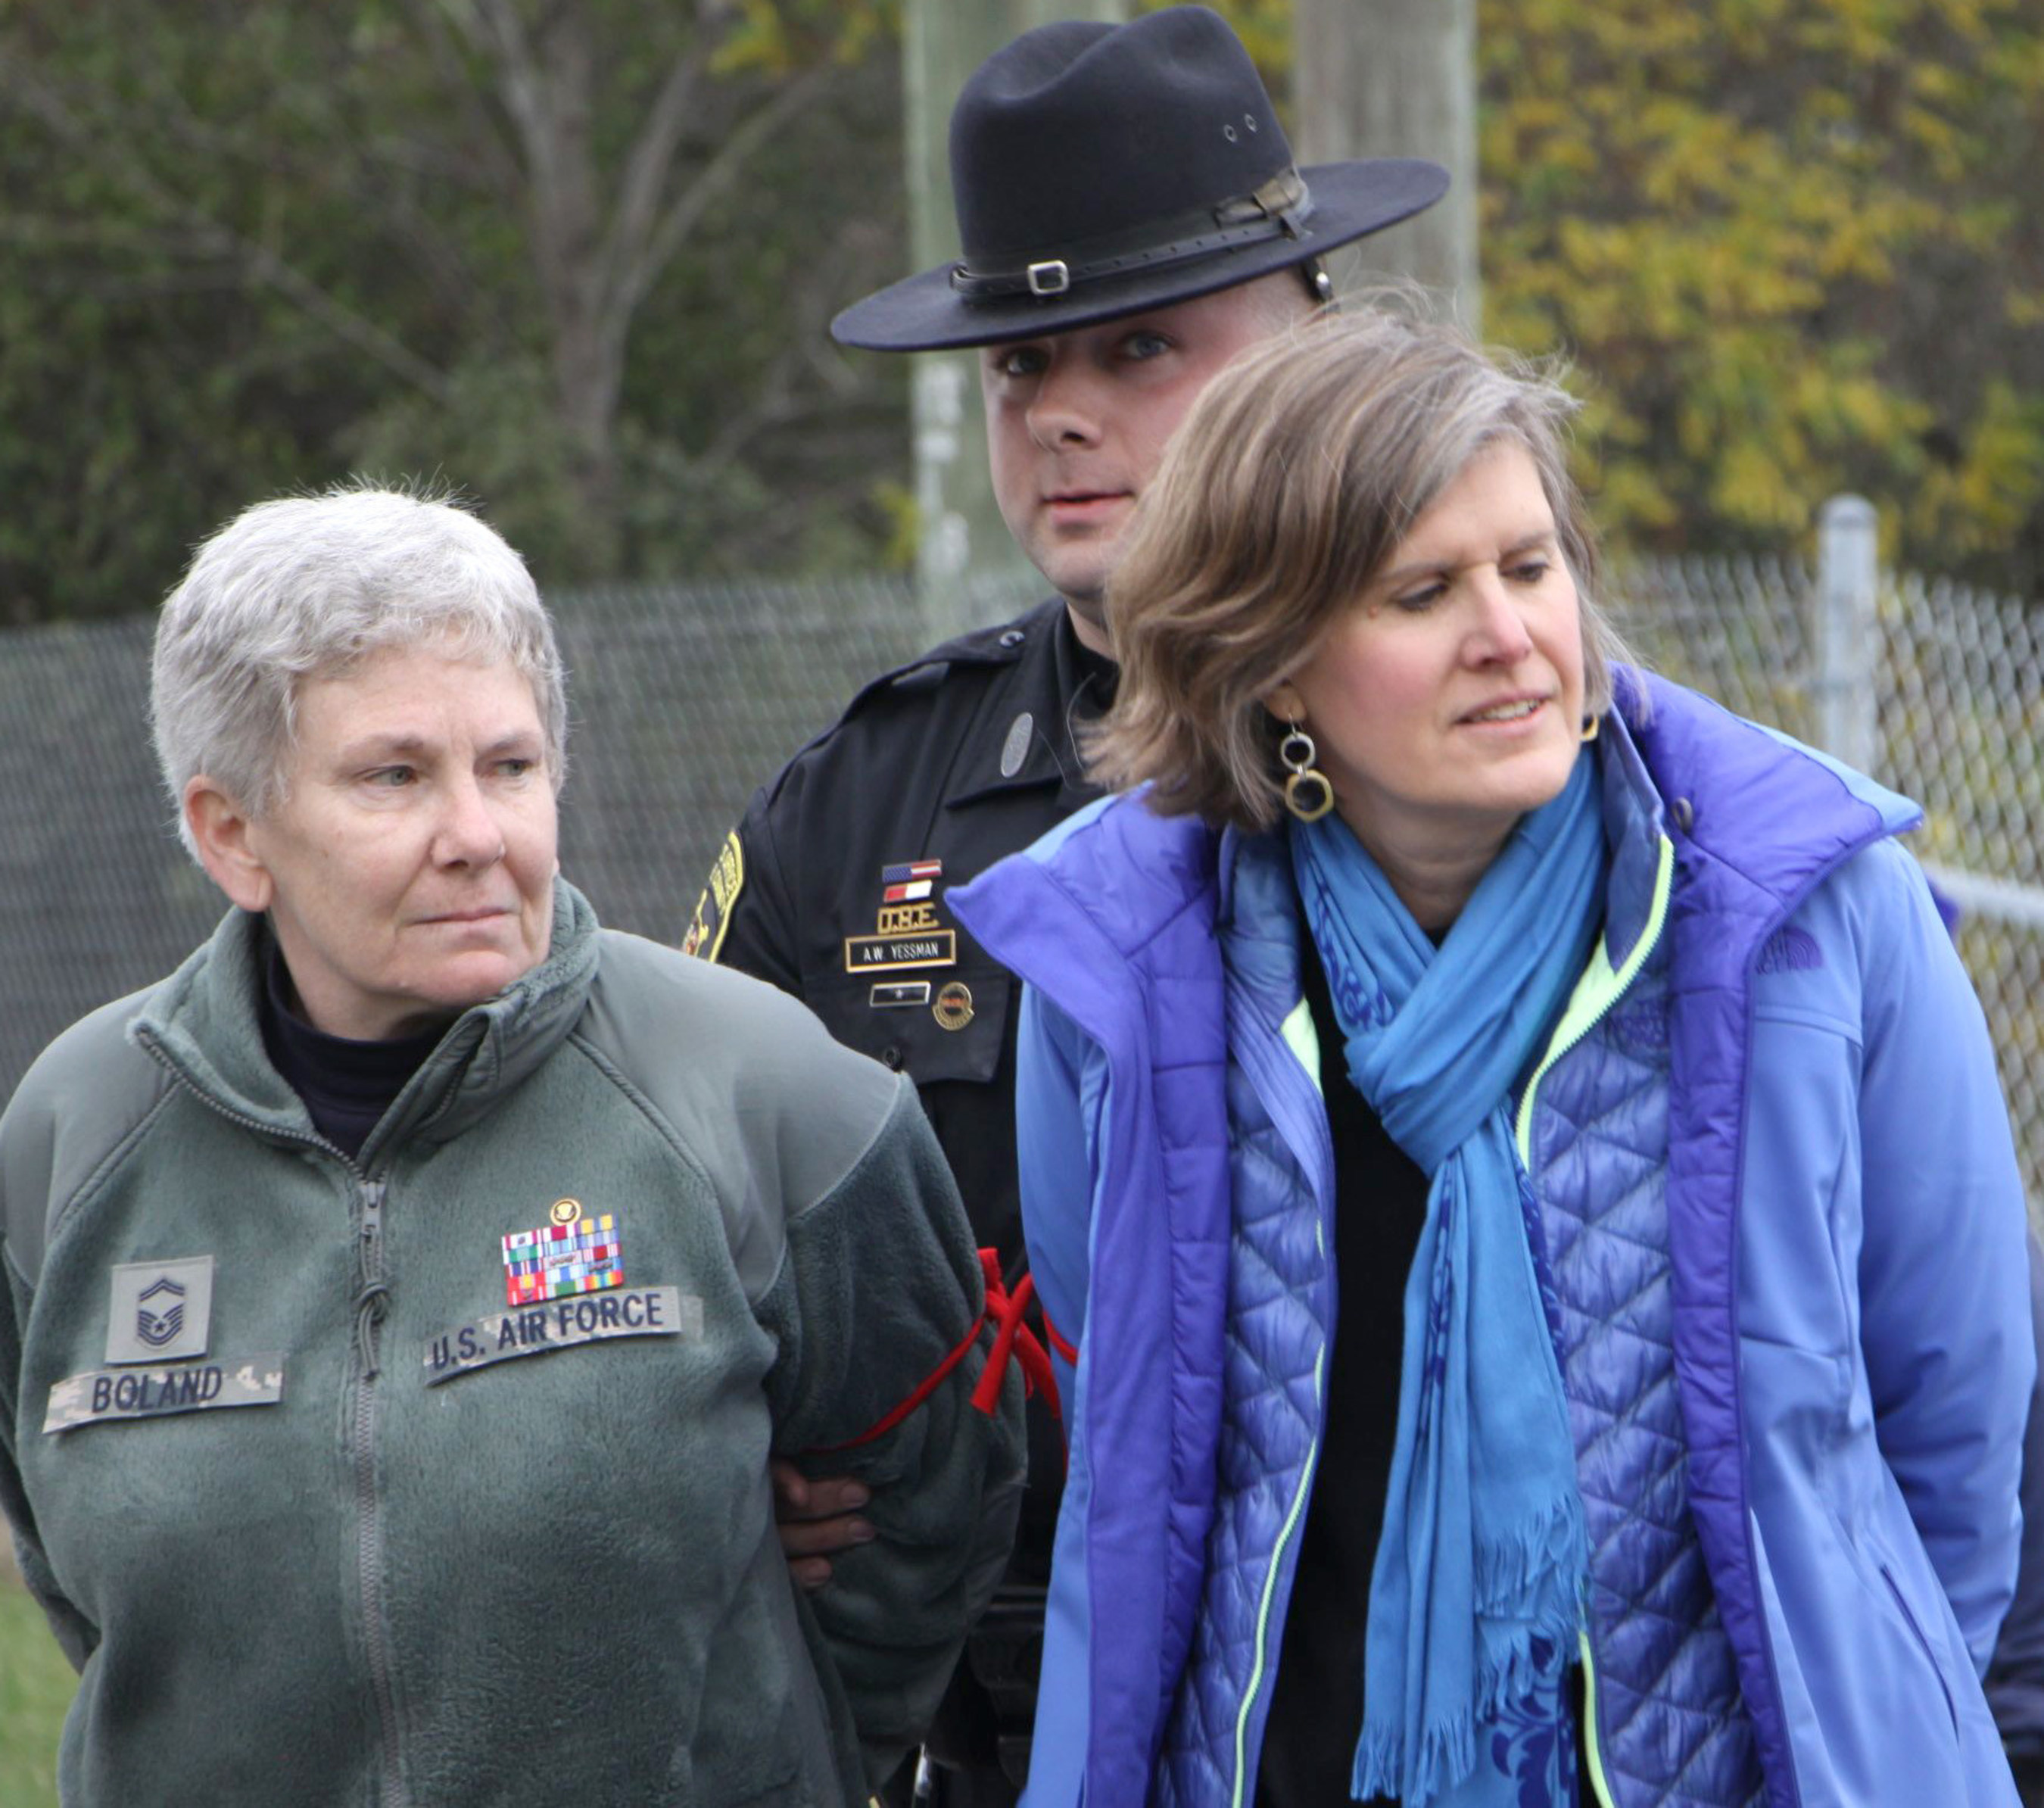 Seneca Lake Defenders Colleen Boland, Senior Master Sergeant, U.S. Air Force (Retired) and renown author and biologist Sandra Steingraber being arrested and led away by Schuyler County Sheriff Yessman. The two women were blockading the gates of Crestwood Midstream with eight others in opposition to expansion of dangerous gas storage in the crumbling salt caverns next to Seneca Lake. It is a center of winemaking and tourism in the pristine Finger Lakes Wine Country.